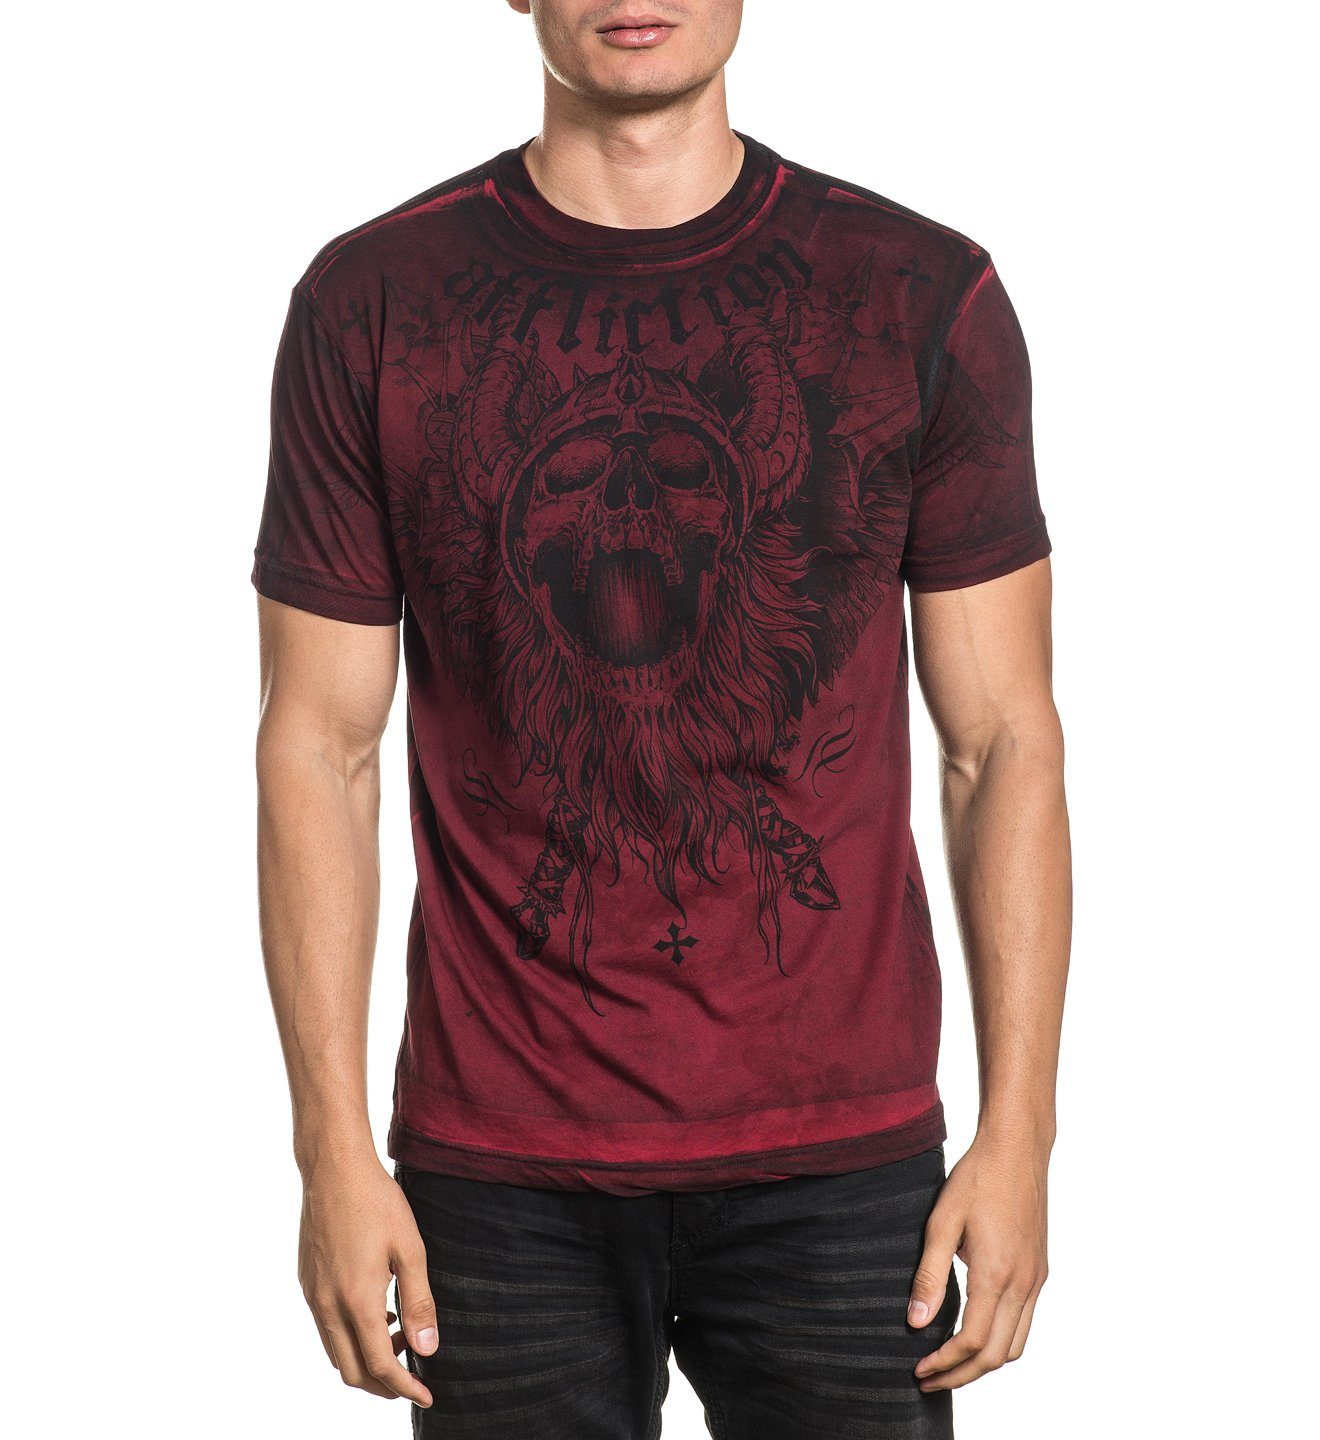 Crusher - Mens Short Sleeve Tees - Affliction Clothing